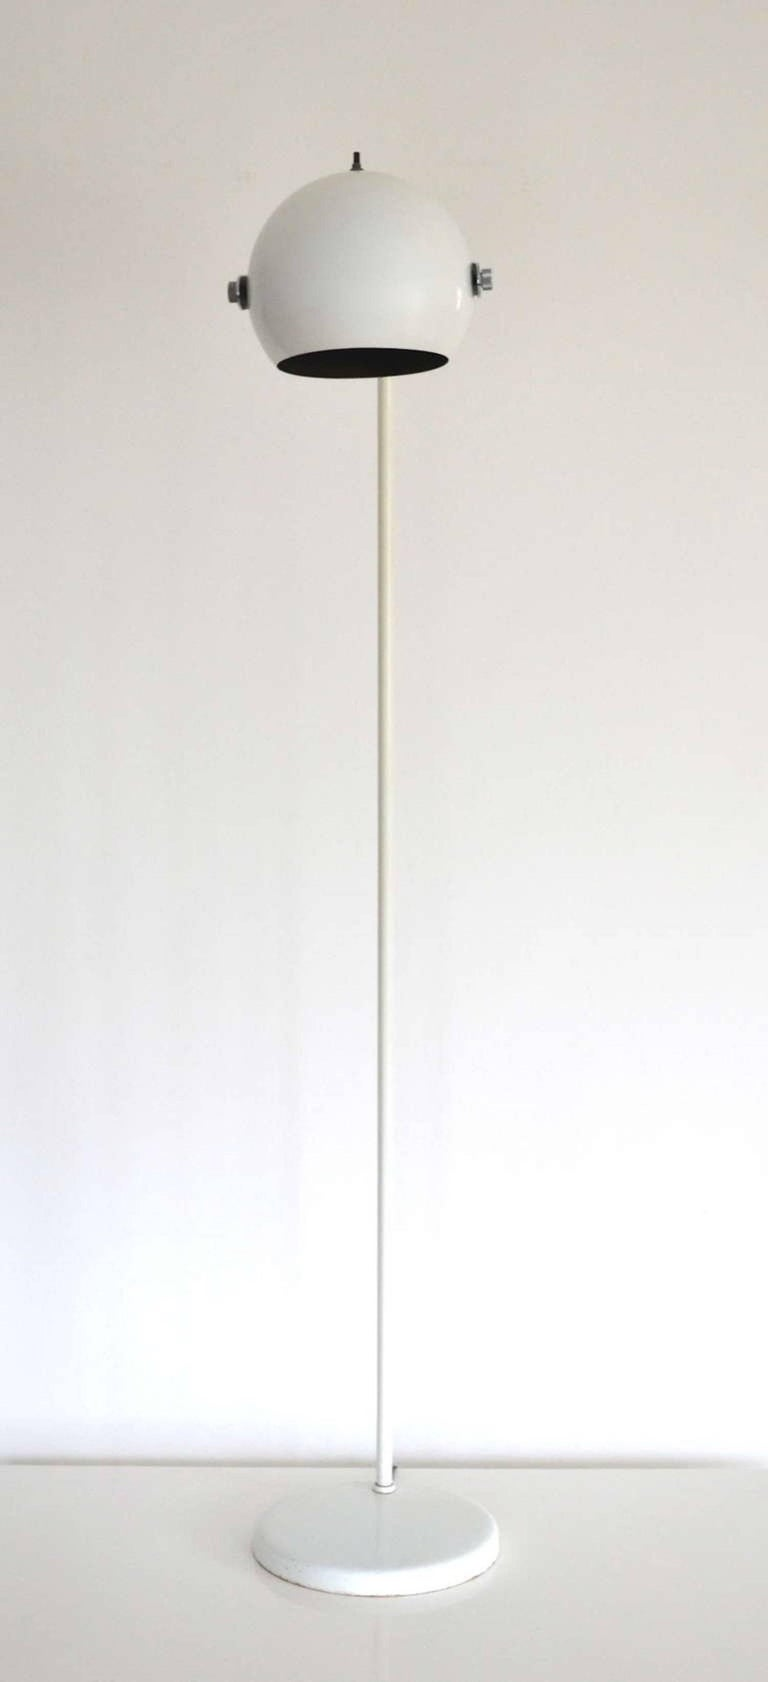 Midcentury Floor Lamp by Robert Sonneman In Excellent Condition For Sale In West Palm Beach, FL